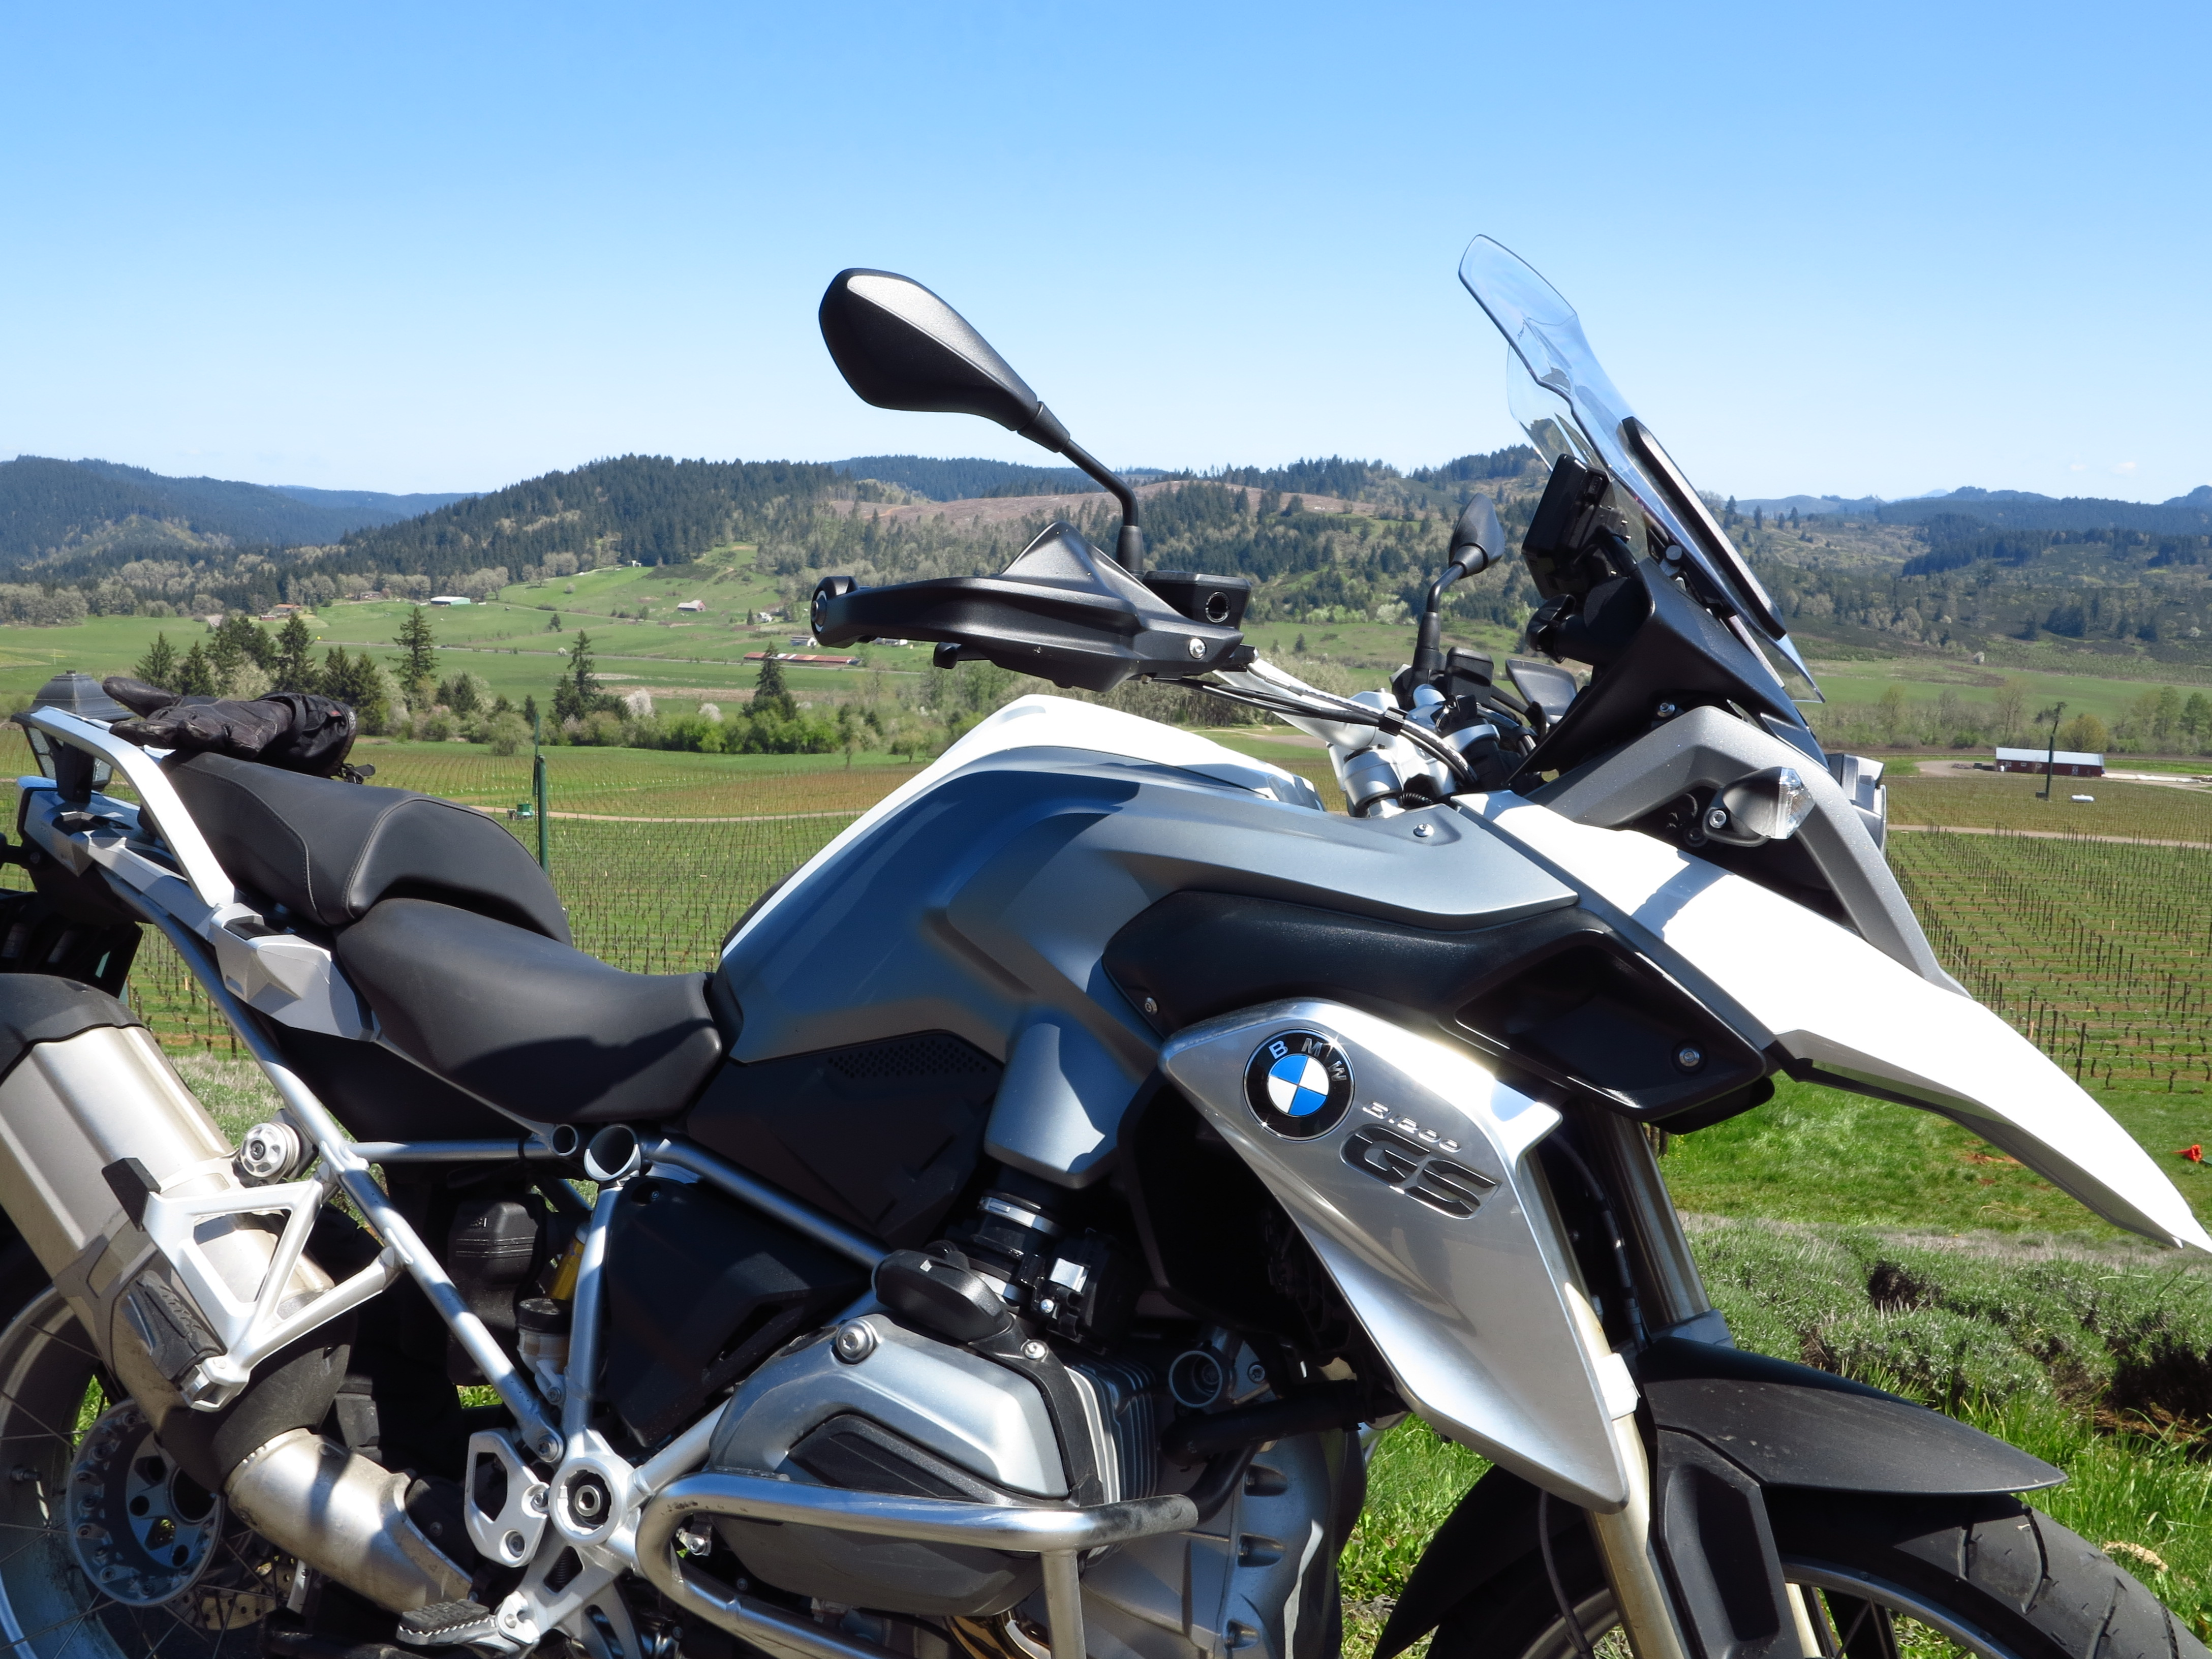 Riding the 2014 Water-Cooled BMW R1200GS | I'd rather be riding…